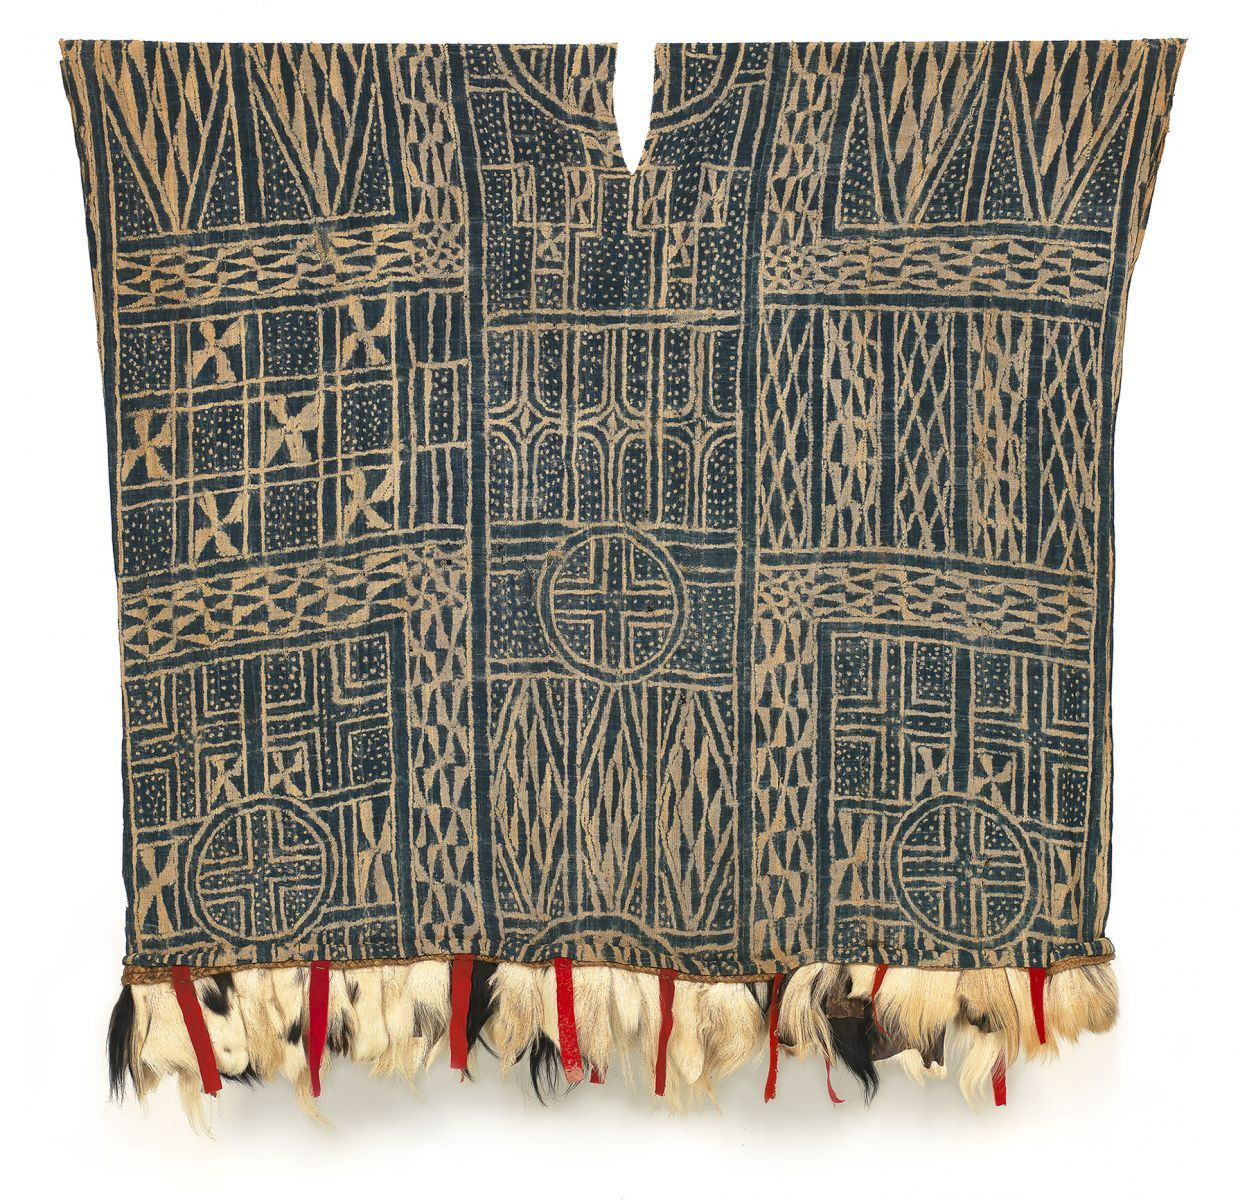 """Nzondoup Dance or Masquerade Ndop Tunic Bamum or Bamileke people Cameroon First half 20th century Cotton, trade cloth, goat hair  Strip weave, stitch resist dye Size: 57"""" x 64"""""""